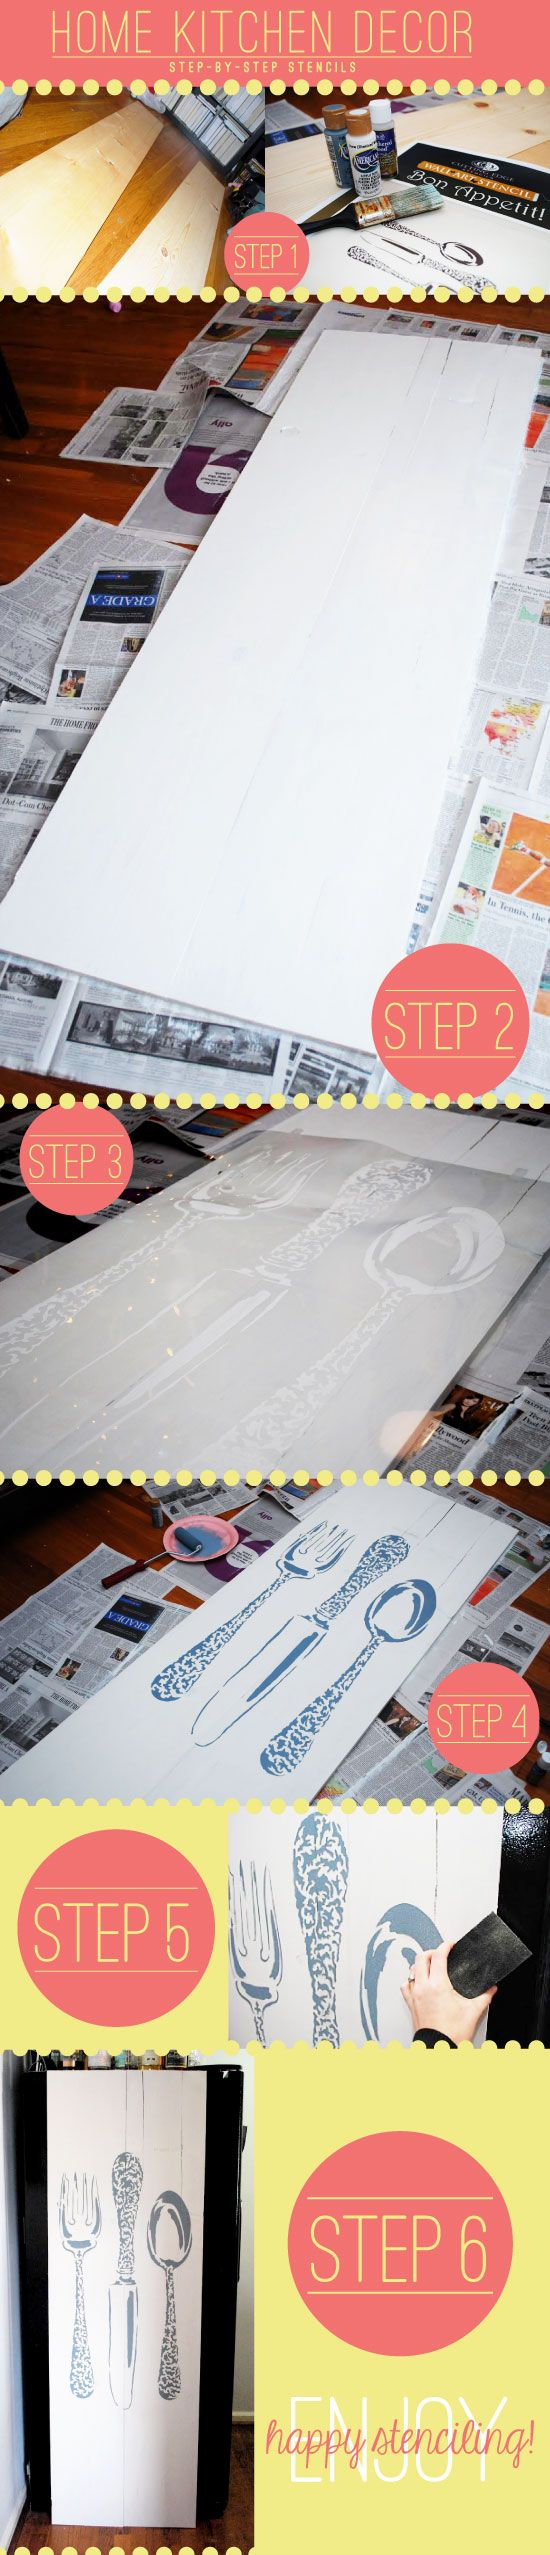 Stenciling Kitchen Decor using Bon Appetit Stencil tutorial